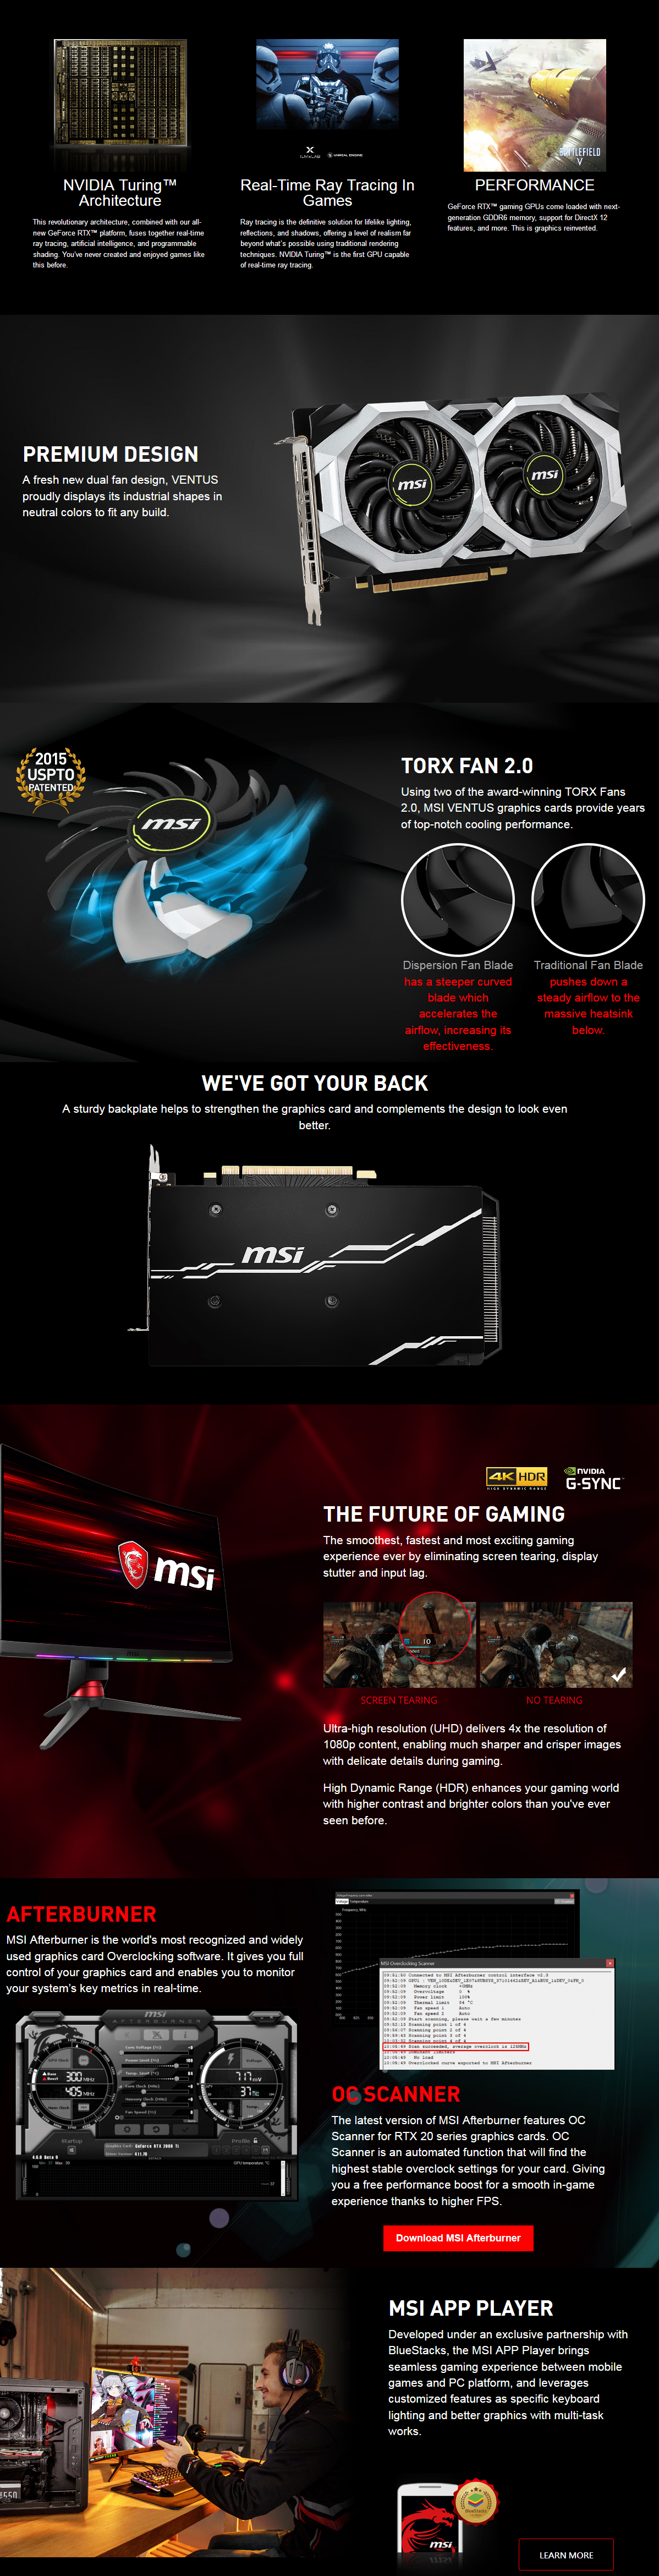 Buy Online MSI GeForce RTX 2060 VENTUS XS 6G OC Graphic Card - in India